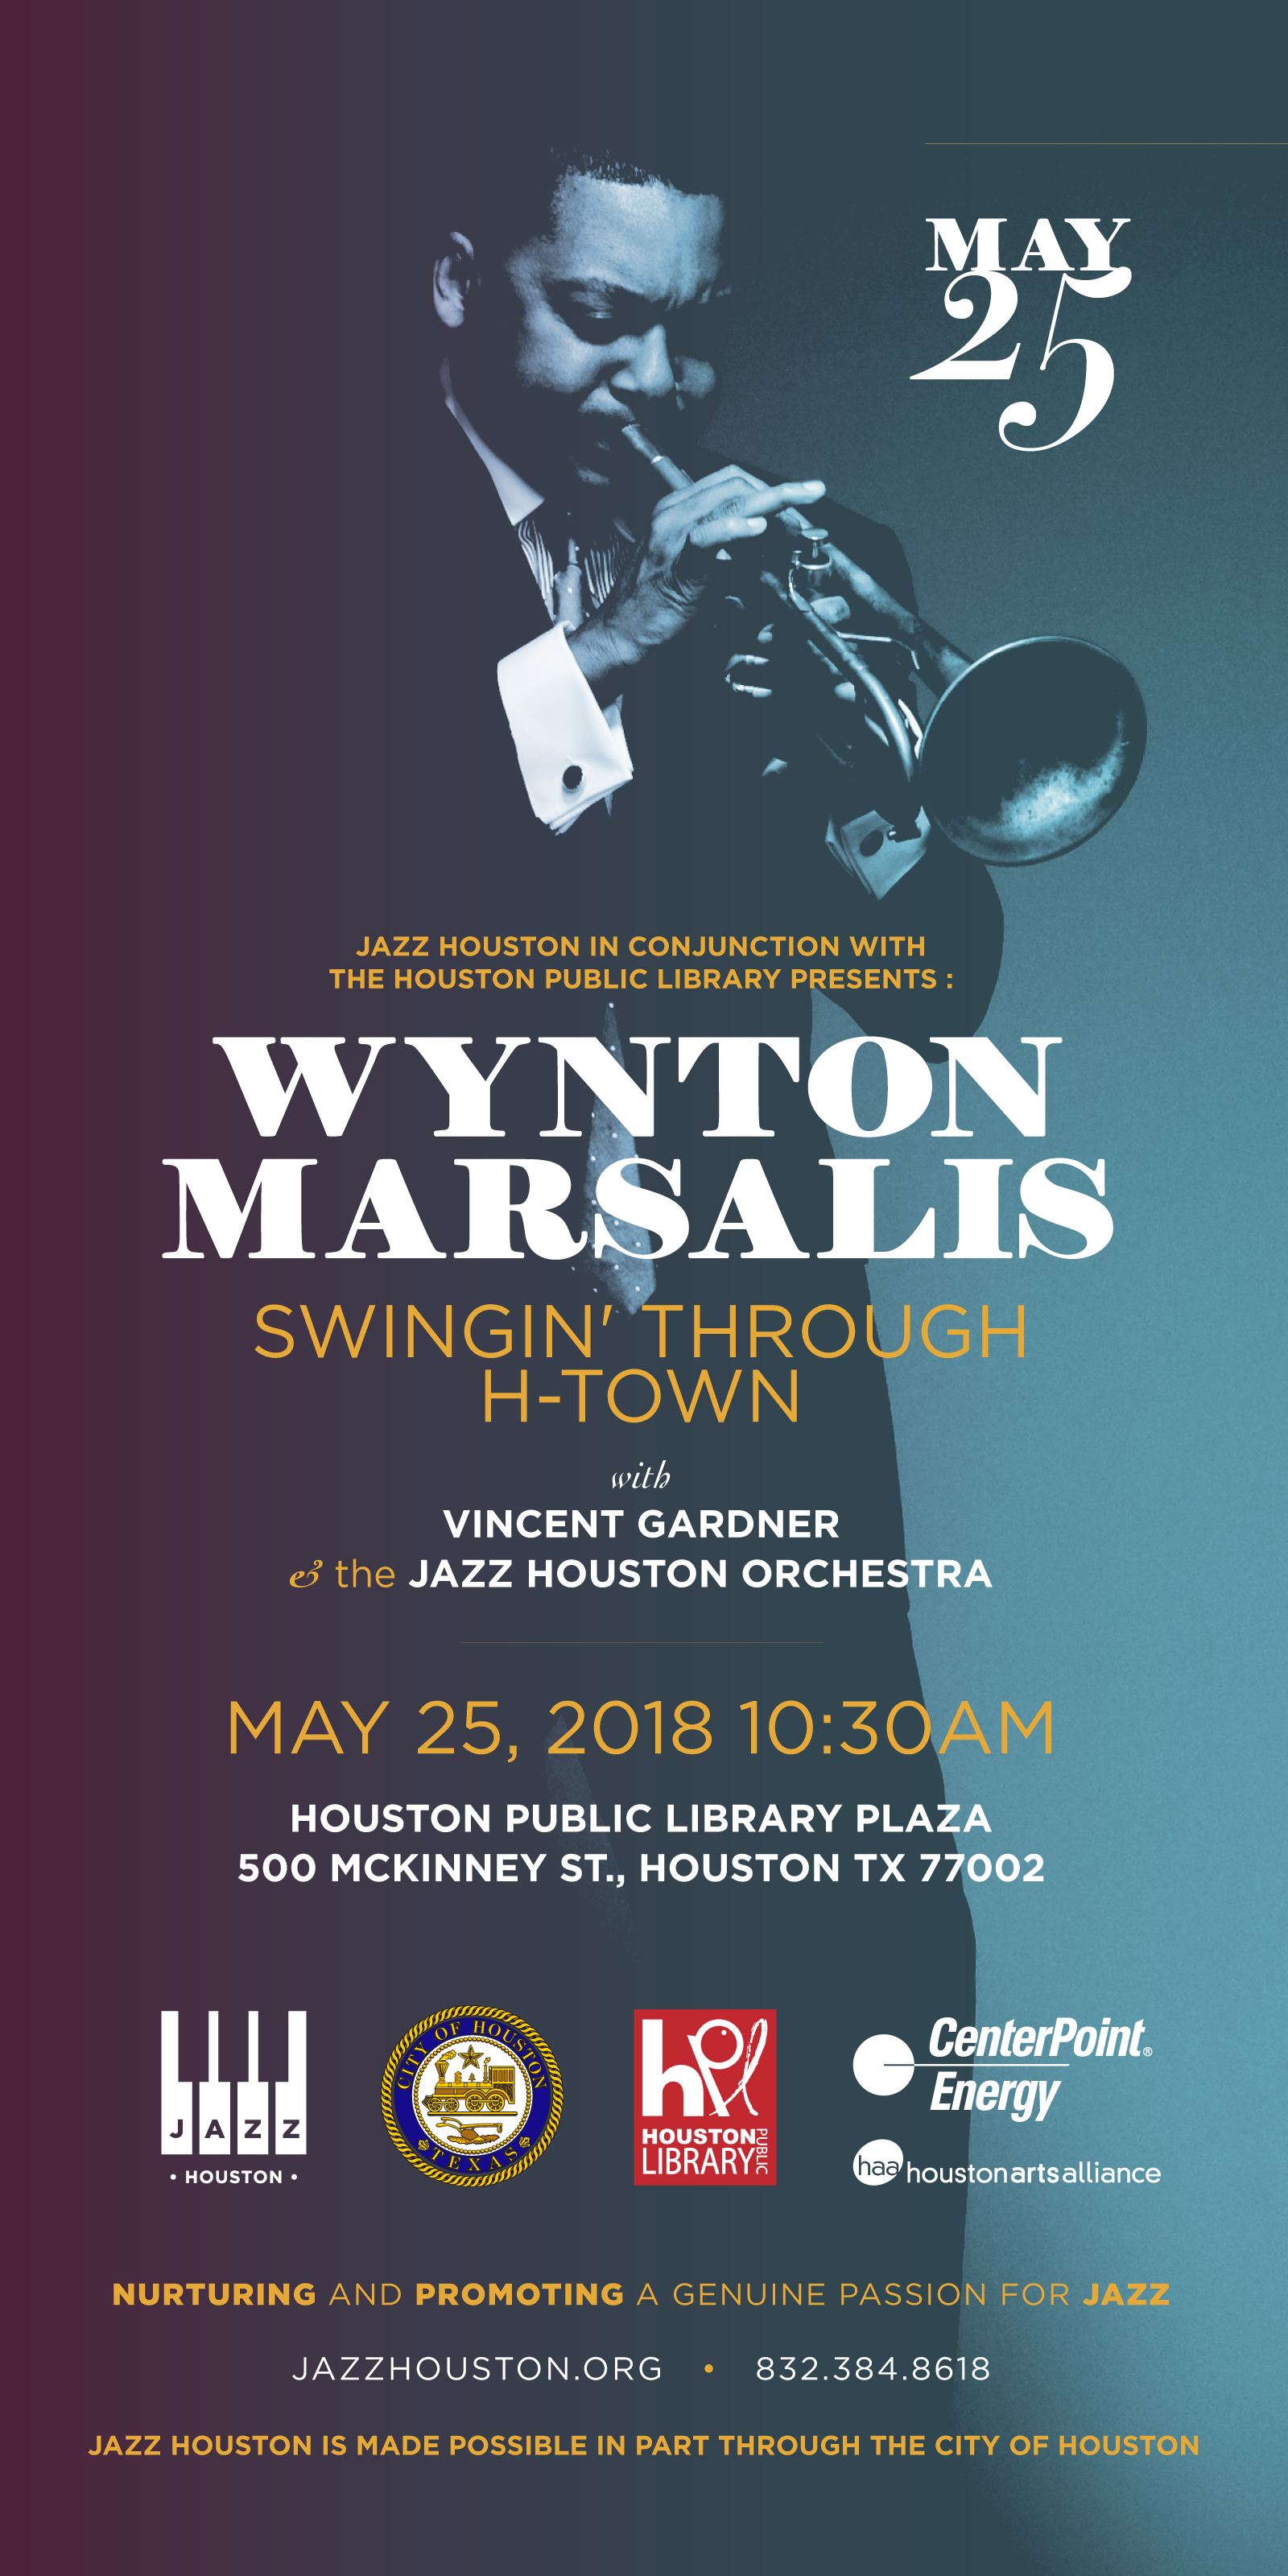 Wynton Marsalis - Digital Flier updated.jpg